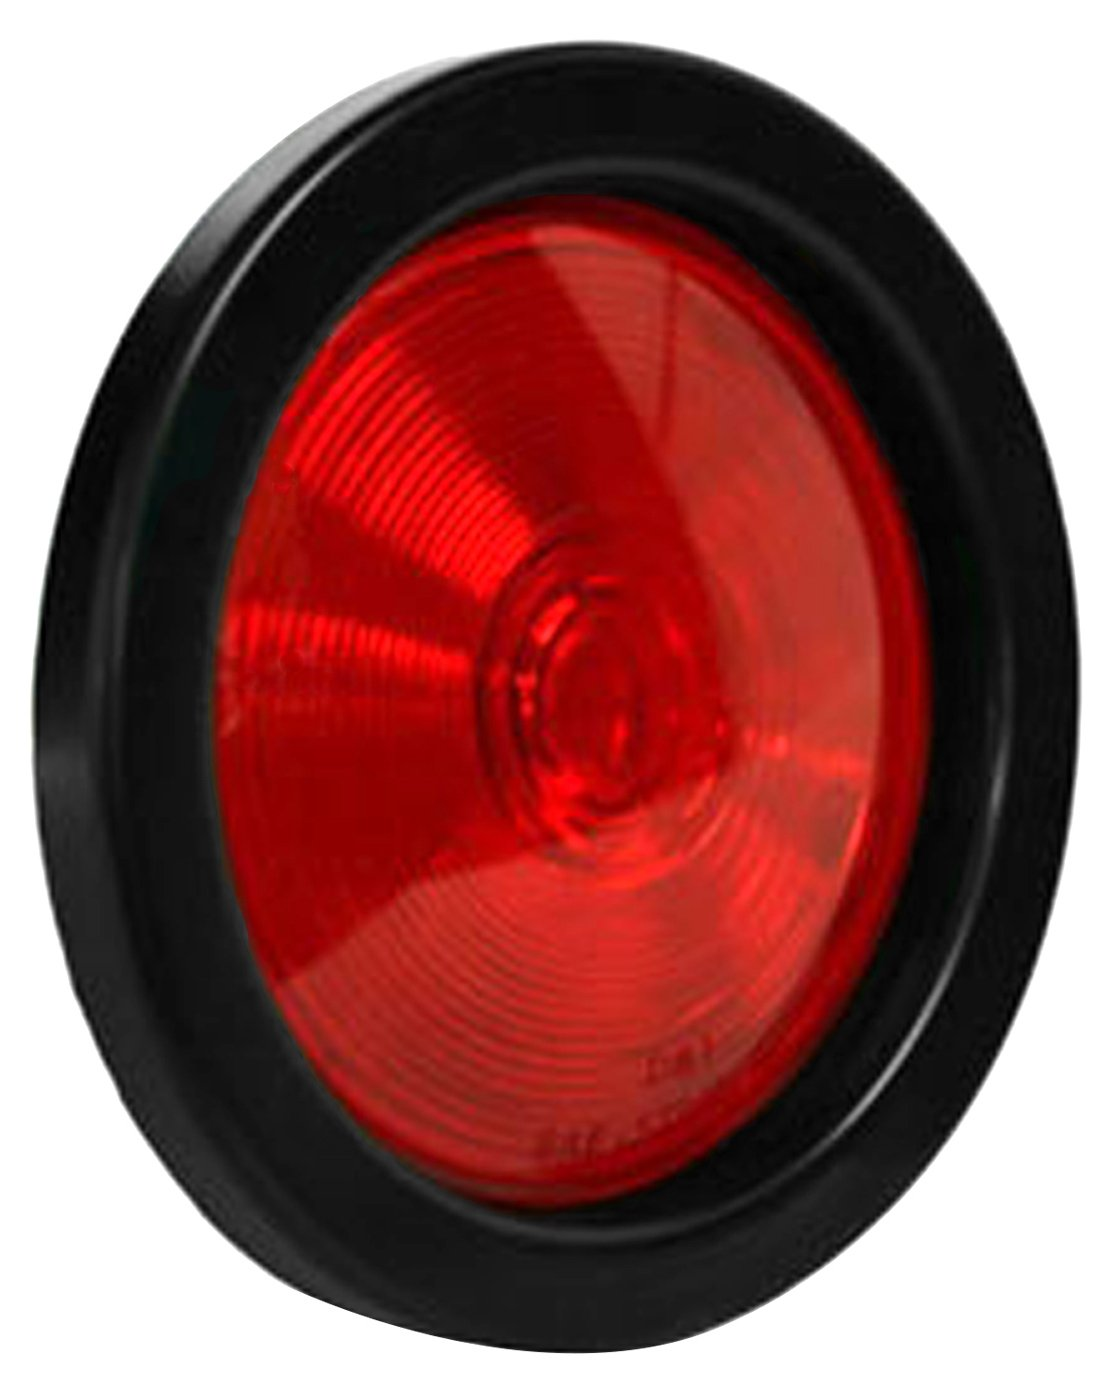 Blazer International Trailer & Towing Accessories Red Pack of 50 Blazer T95BR-50 4-Inch Round Stop/Tail/Turn Light, Red-50 Pack by Blazer International Trailer & Towing Accessories